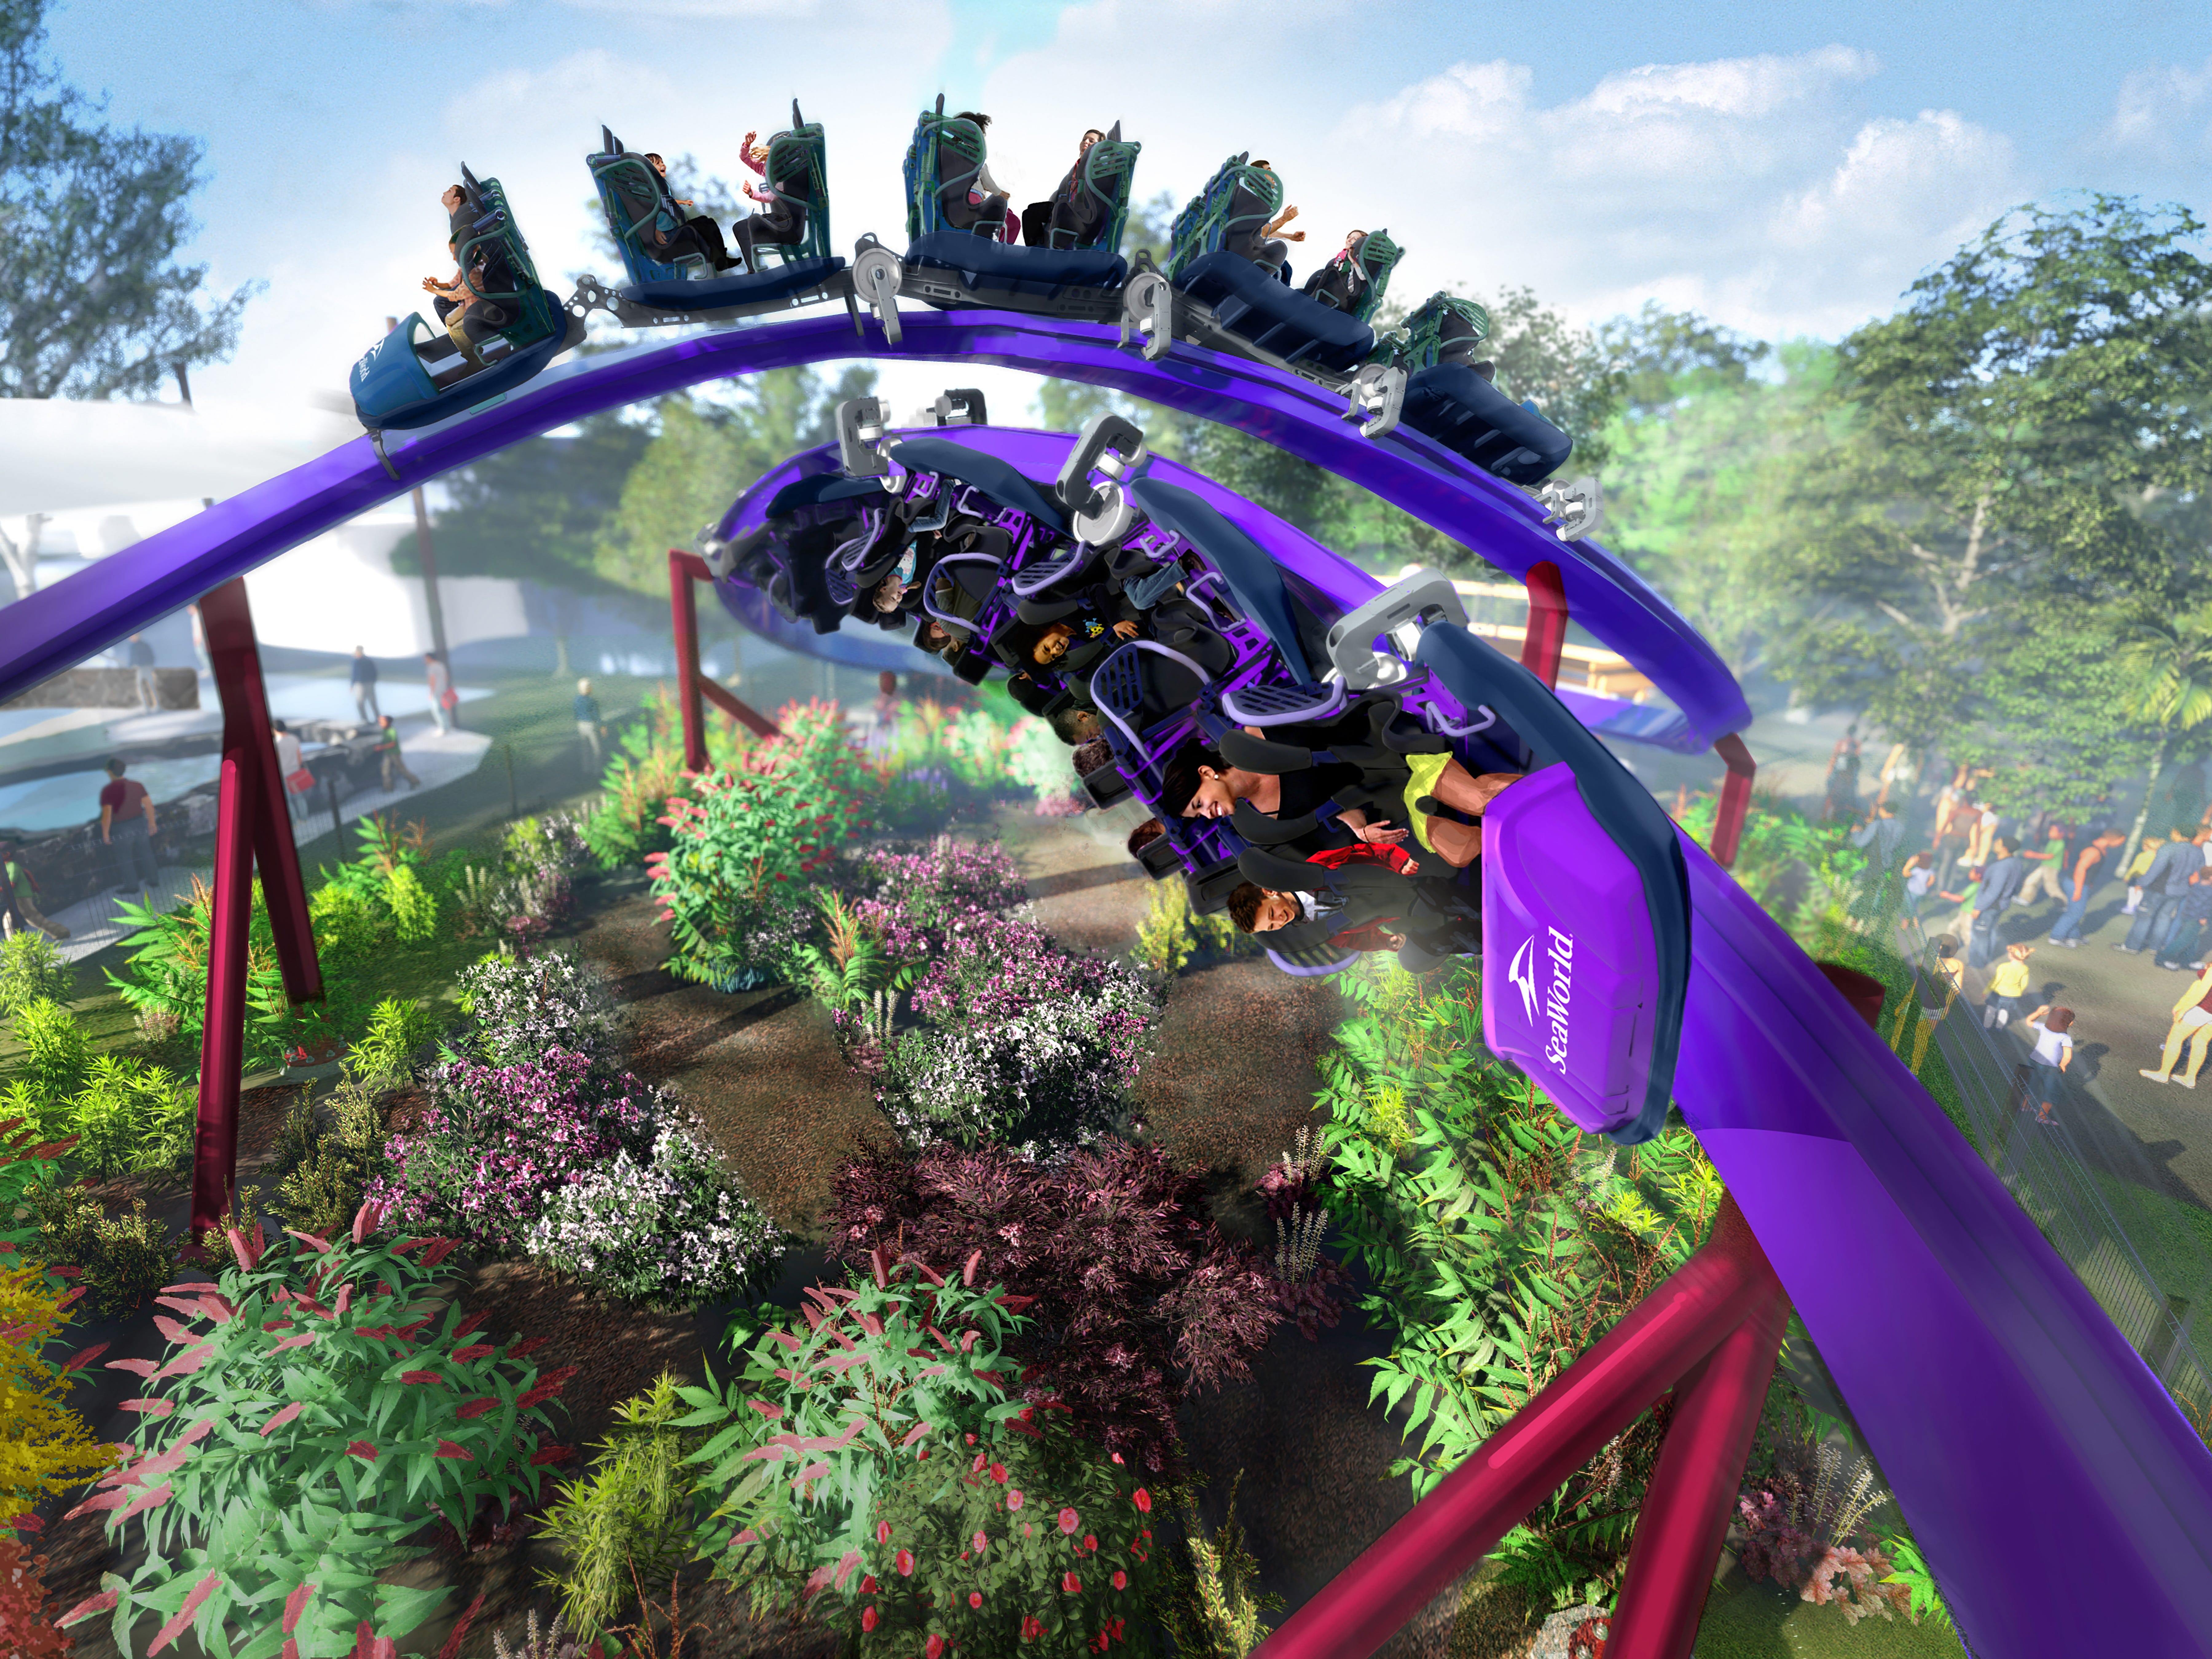 Tidal Twister at SeaWorld San Diego: It will appear that two trains will be barreling toward and narrowly averting each other. In reality, the first-of-its-kind Tidal Twister will feature two sets of cars mounted on one long train with that will span the entire length of a 320-foot, horizontal, figure-8 track. Passengers will face both forward and backward, and the train will travel both directions as it revs up to 30 mph.